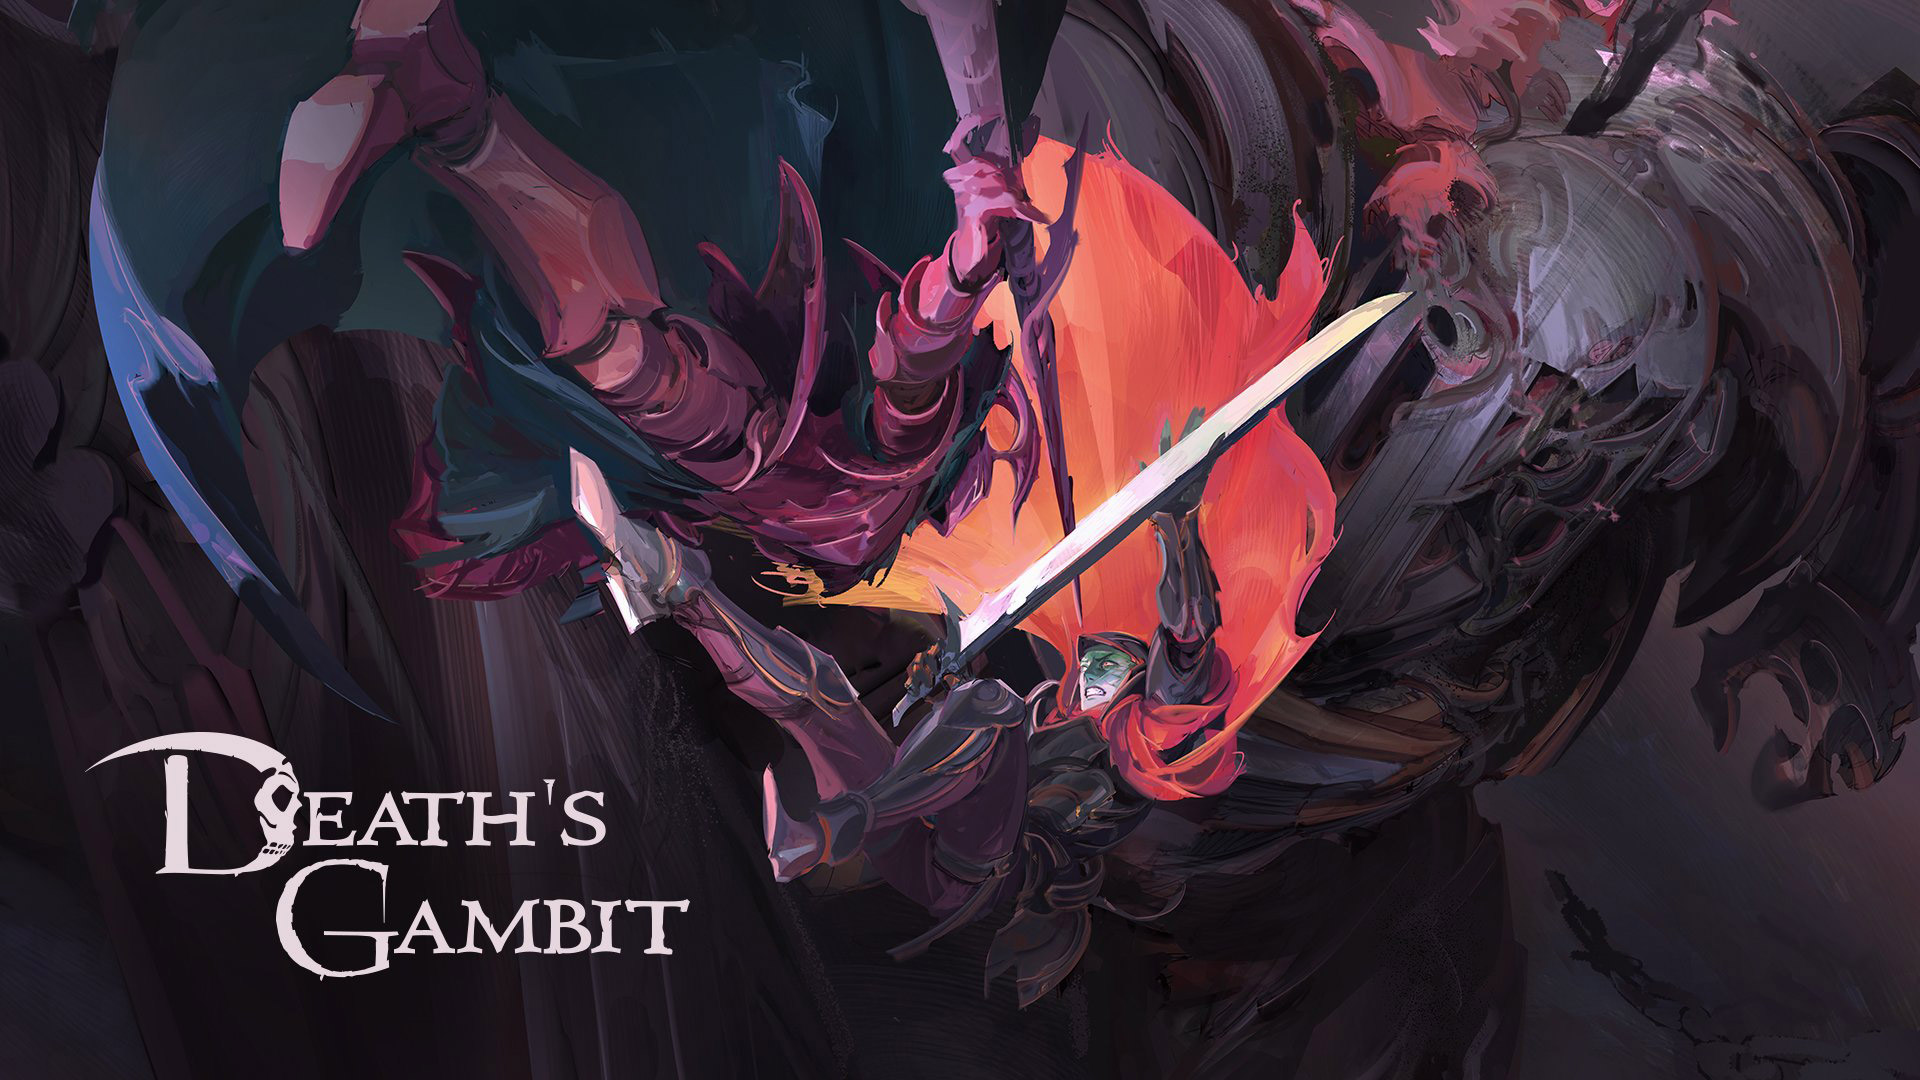 Death's Gambit Wallpaper in 1920x1080